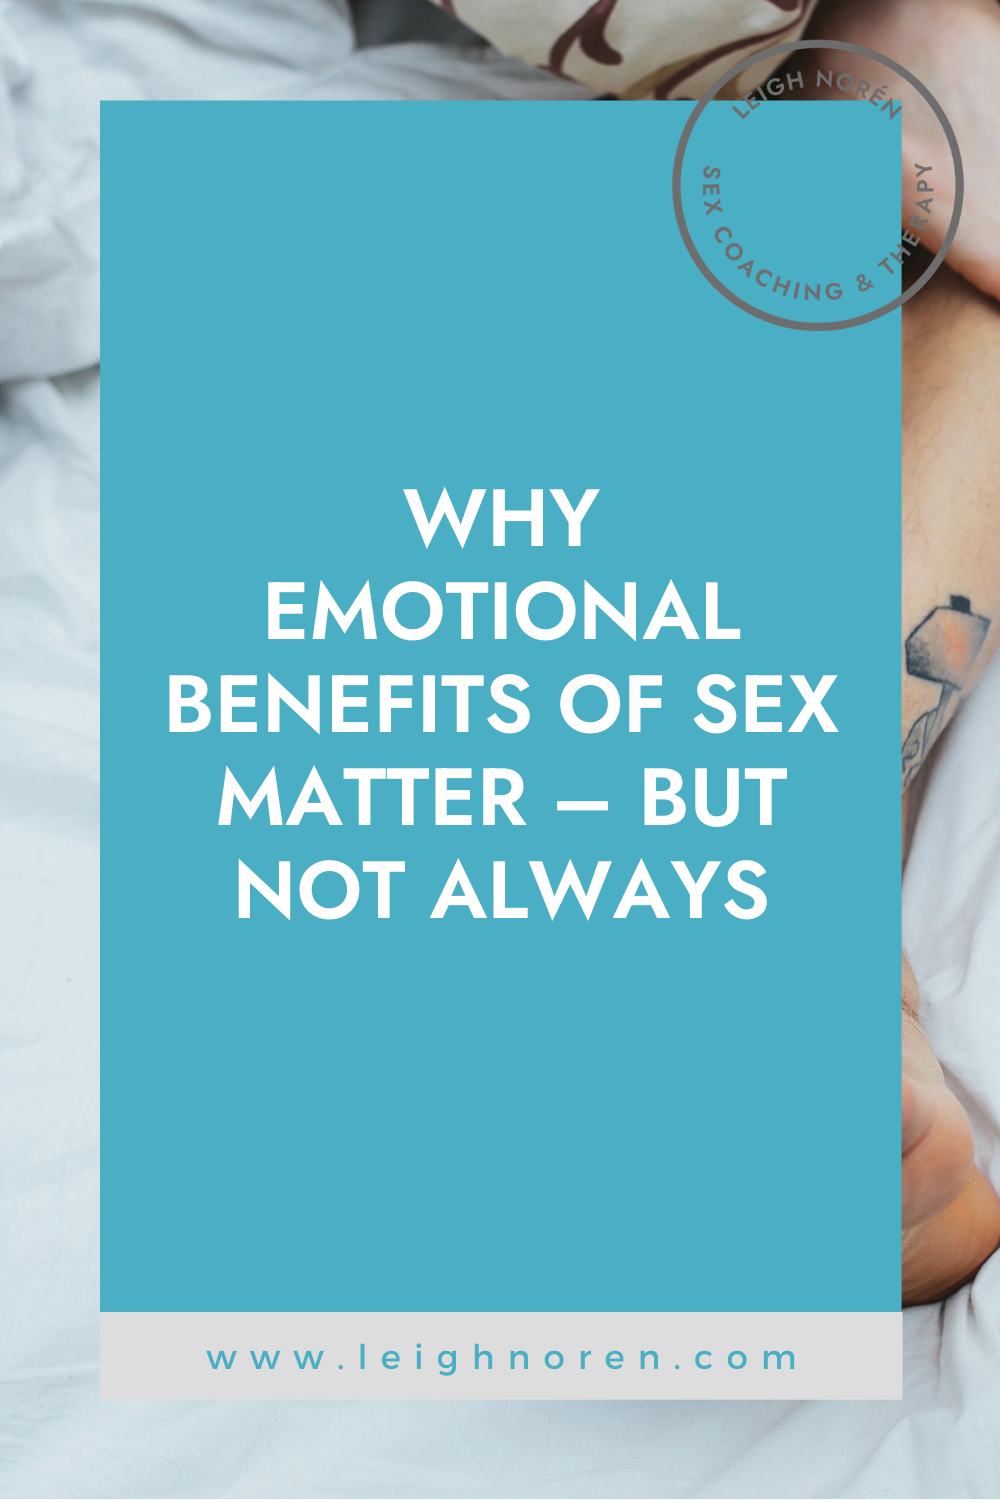 Why Emotional Benefits of Sex Matter - But Not Always